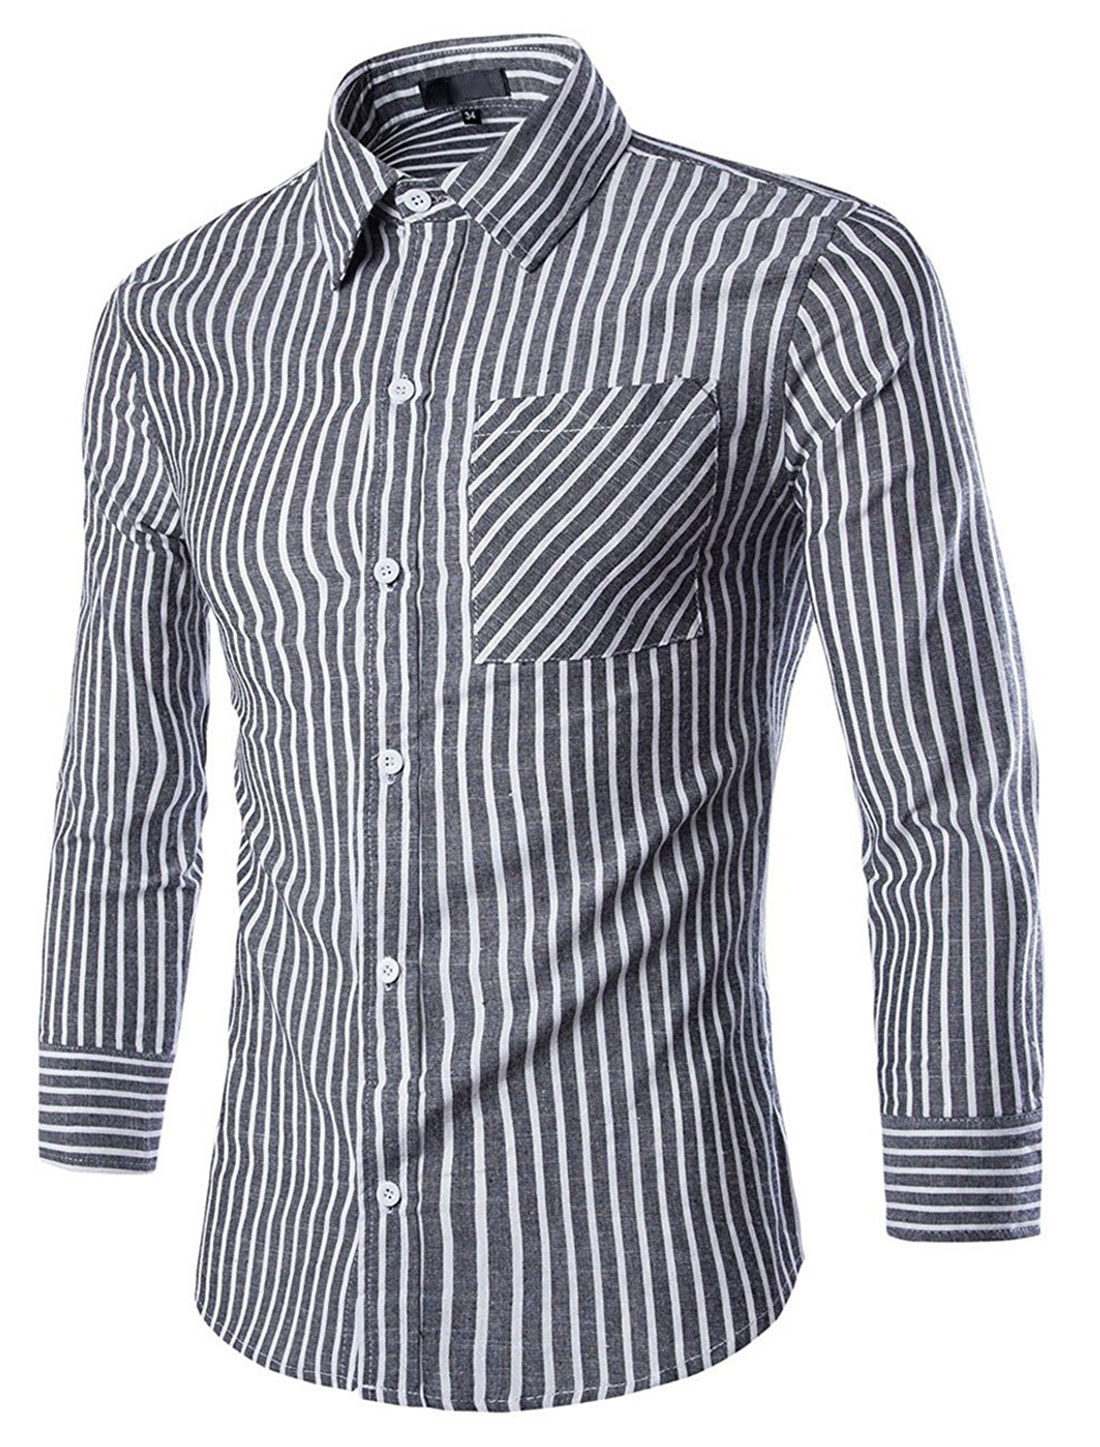 Men Button Down Long Sleeves Striped Slim Fit Shirts Gray White S